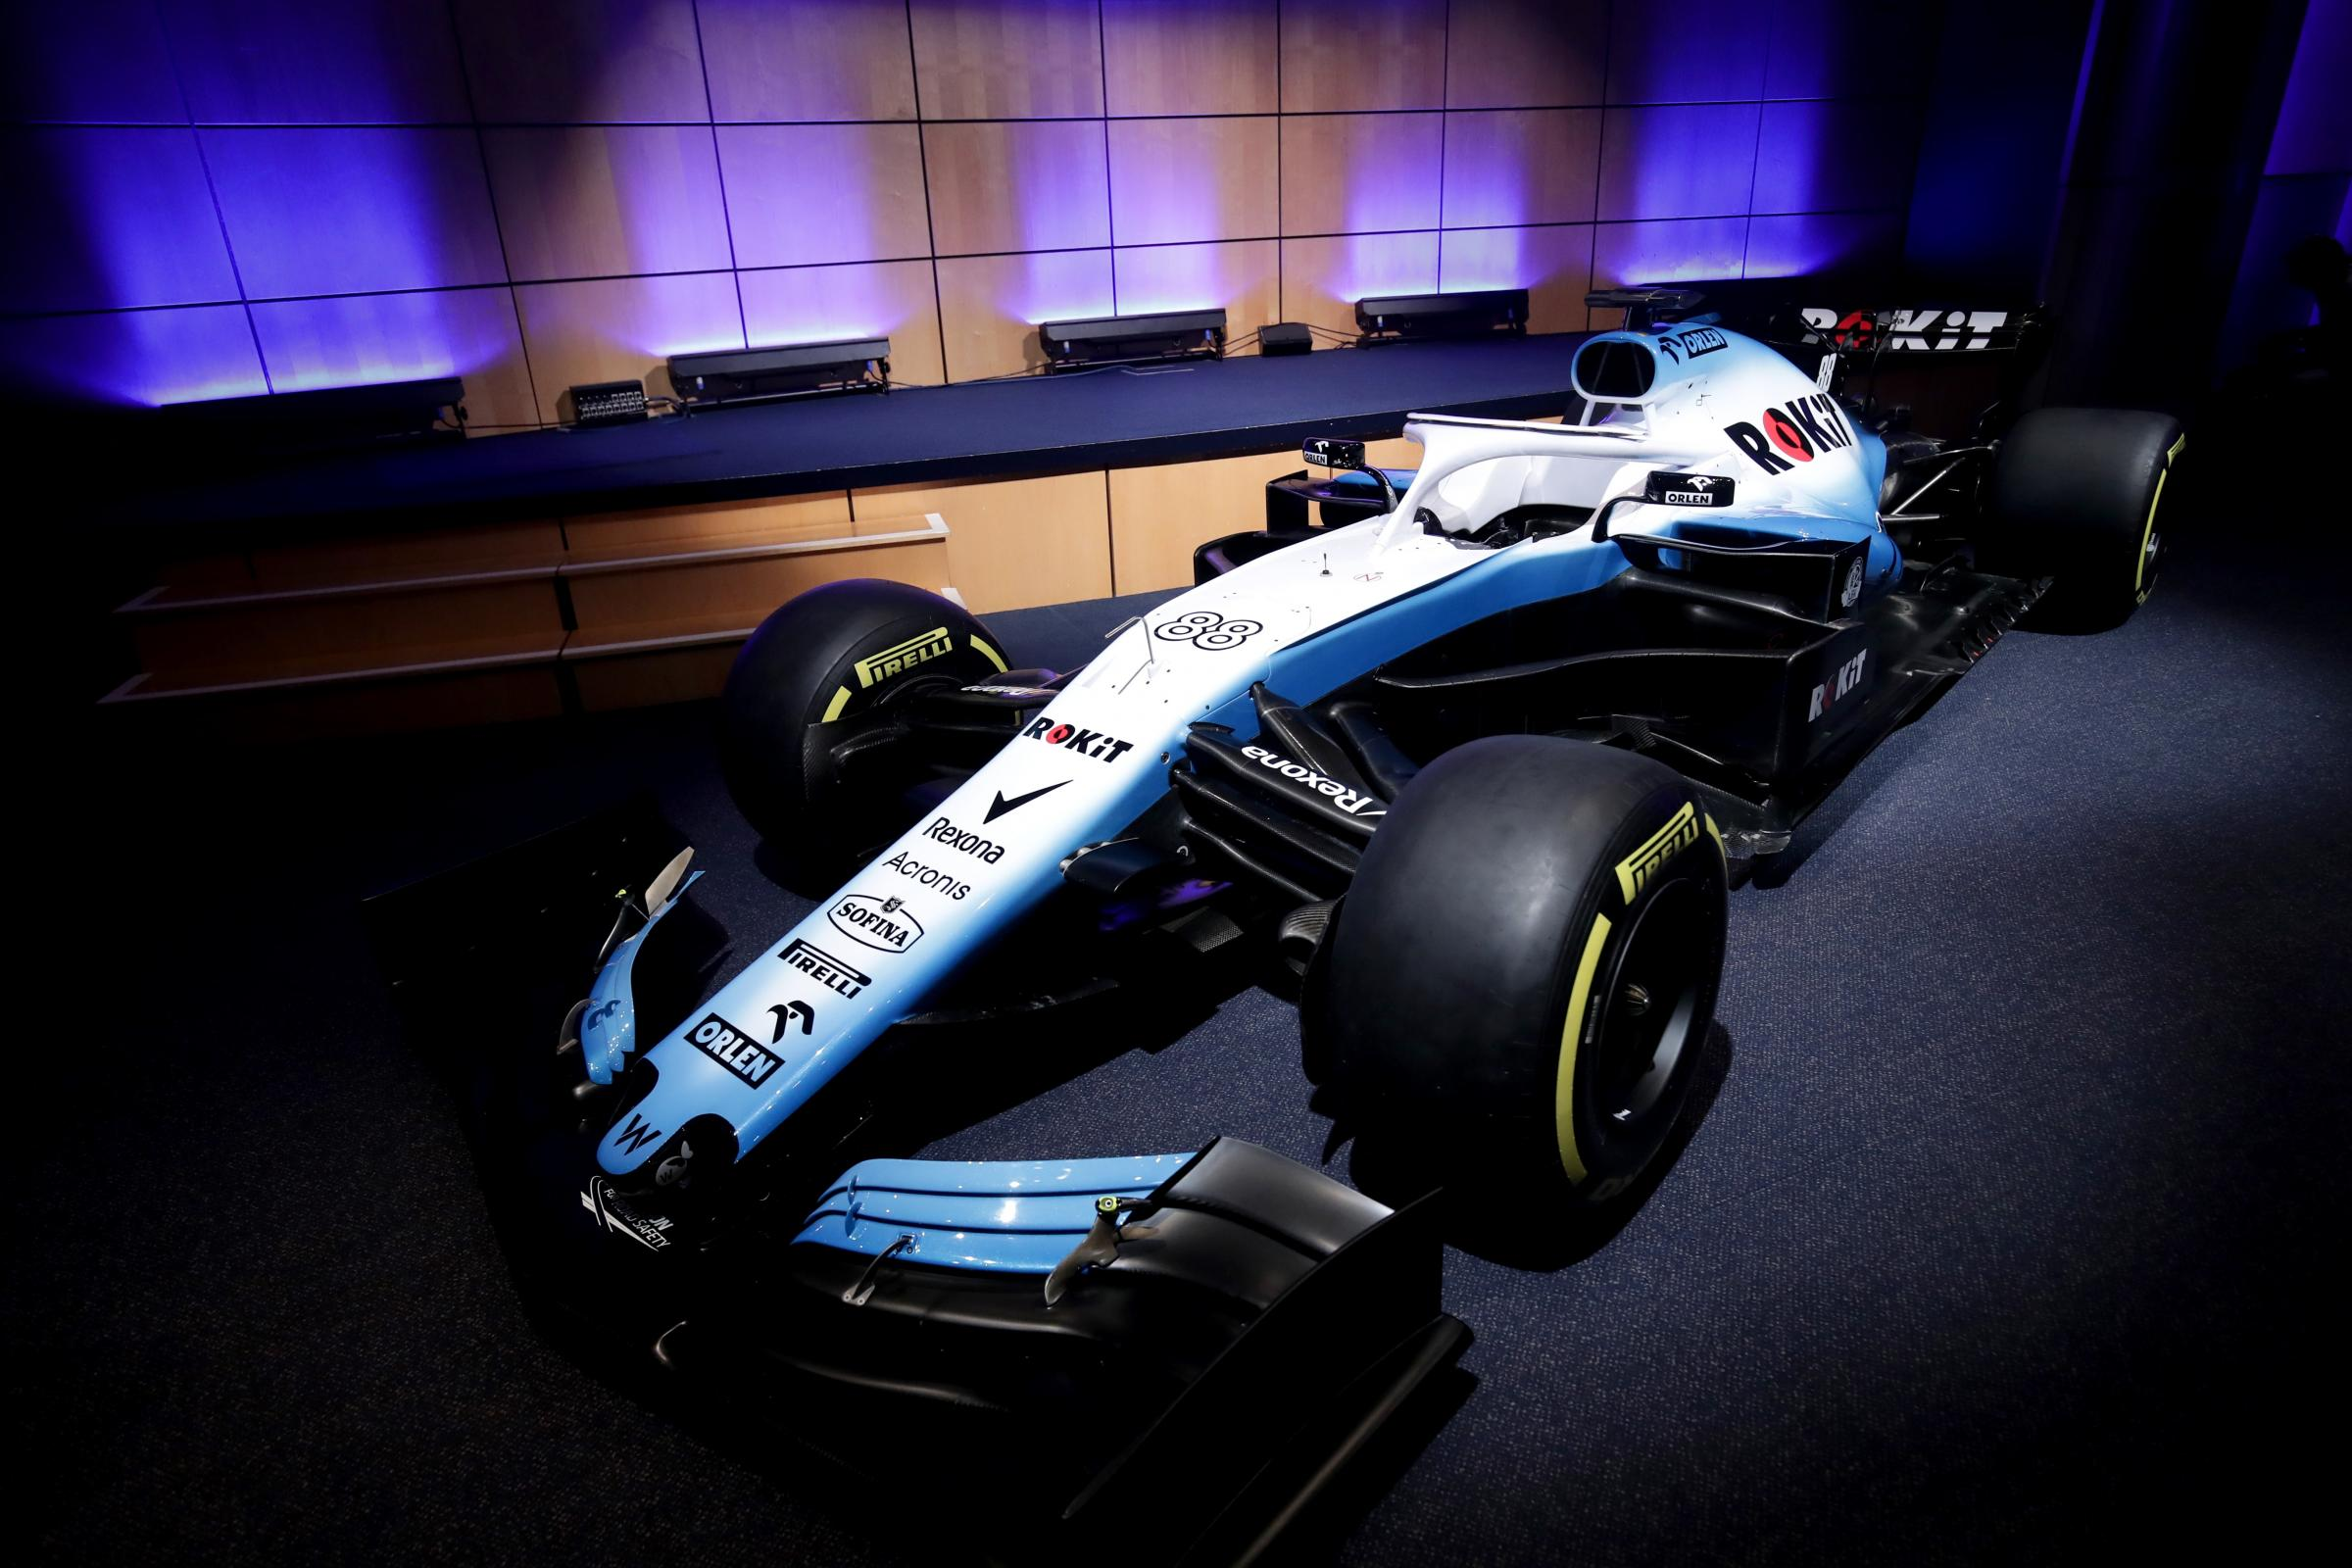 Williams are struggling to get their car on track